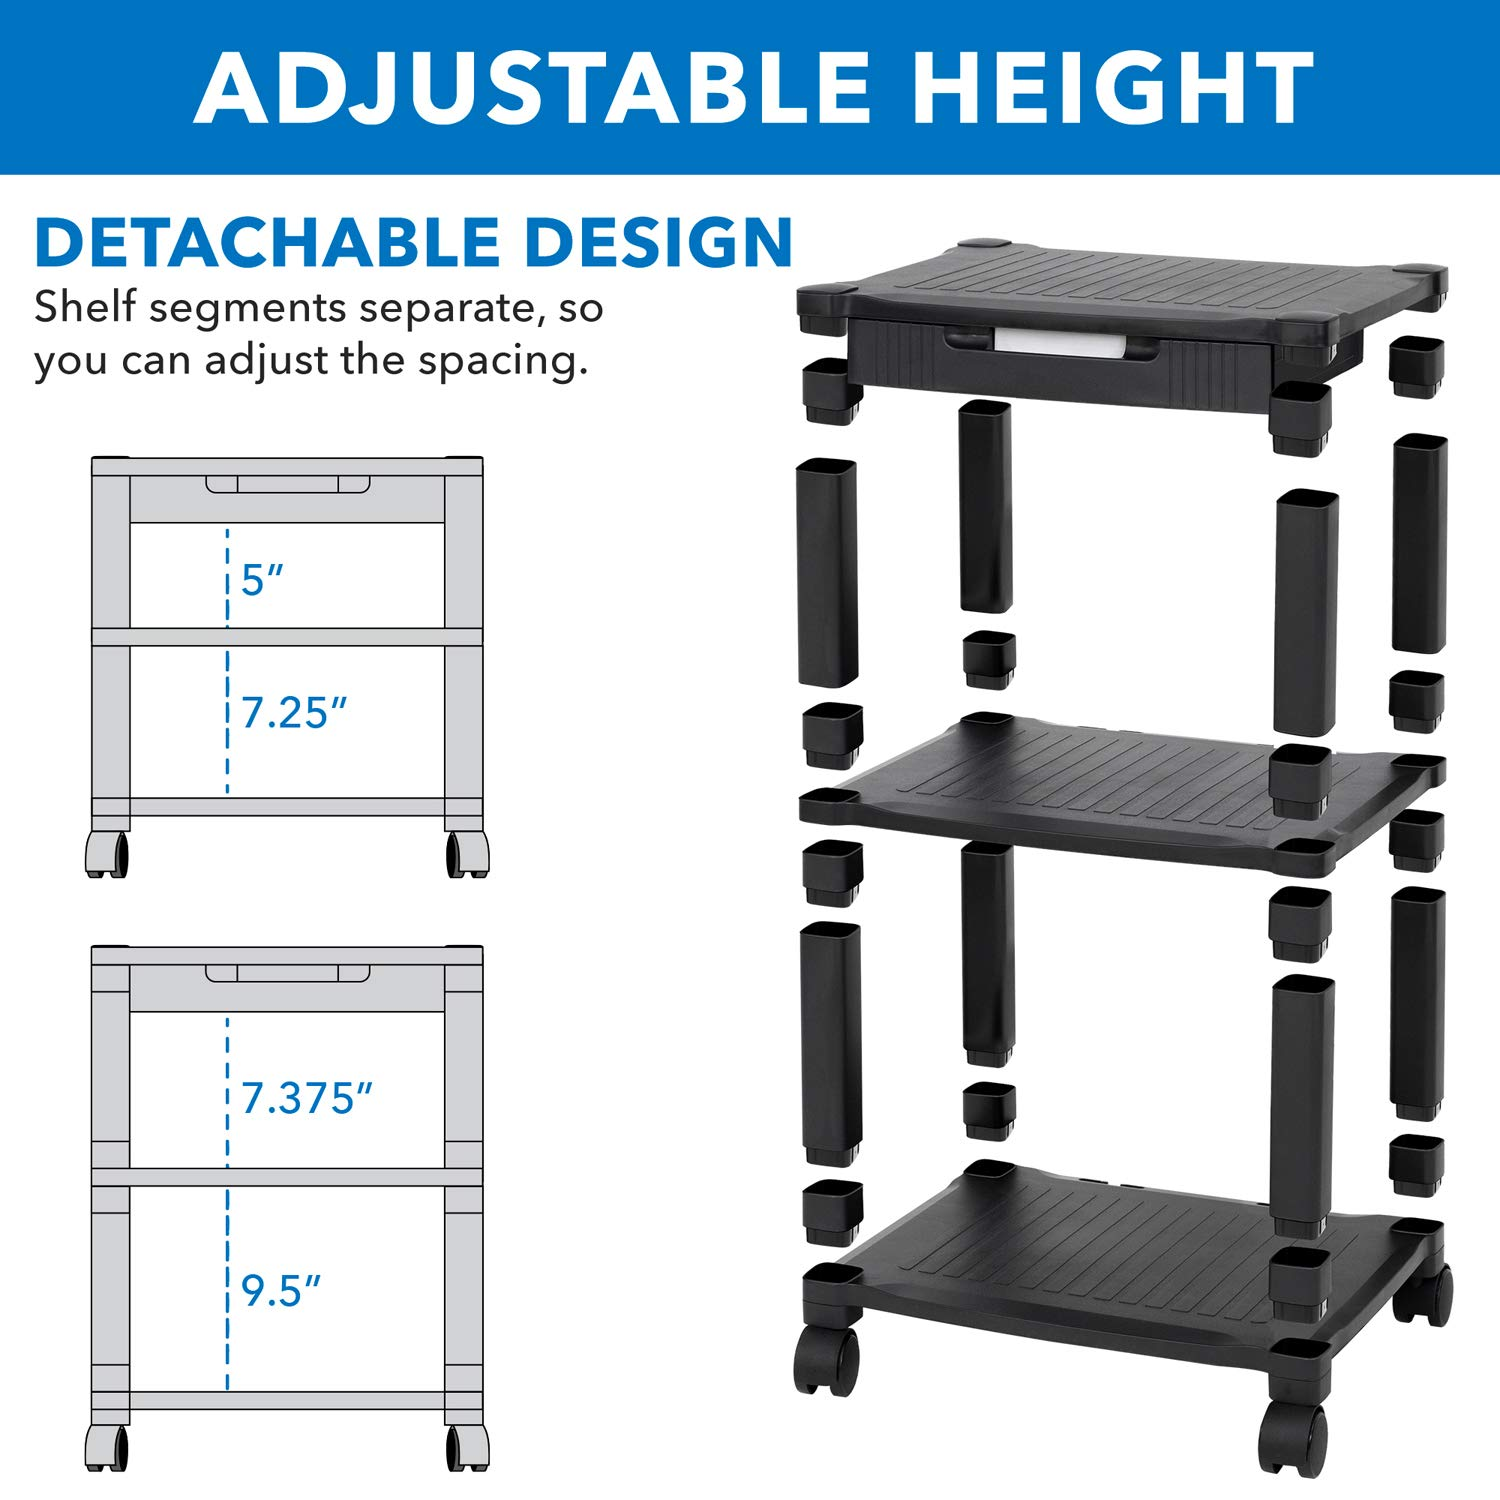 3D Printer Media Cart with Storage Black 3 Shelf Height Adjustable with 4 Swivel Wheels and Cable Management Mobile Printer Stand with Drawer AV Cart MOUNT IT 3 Tier